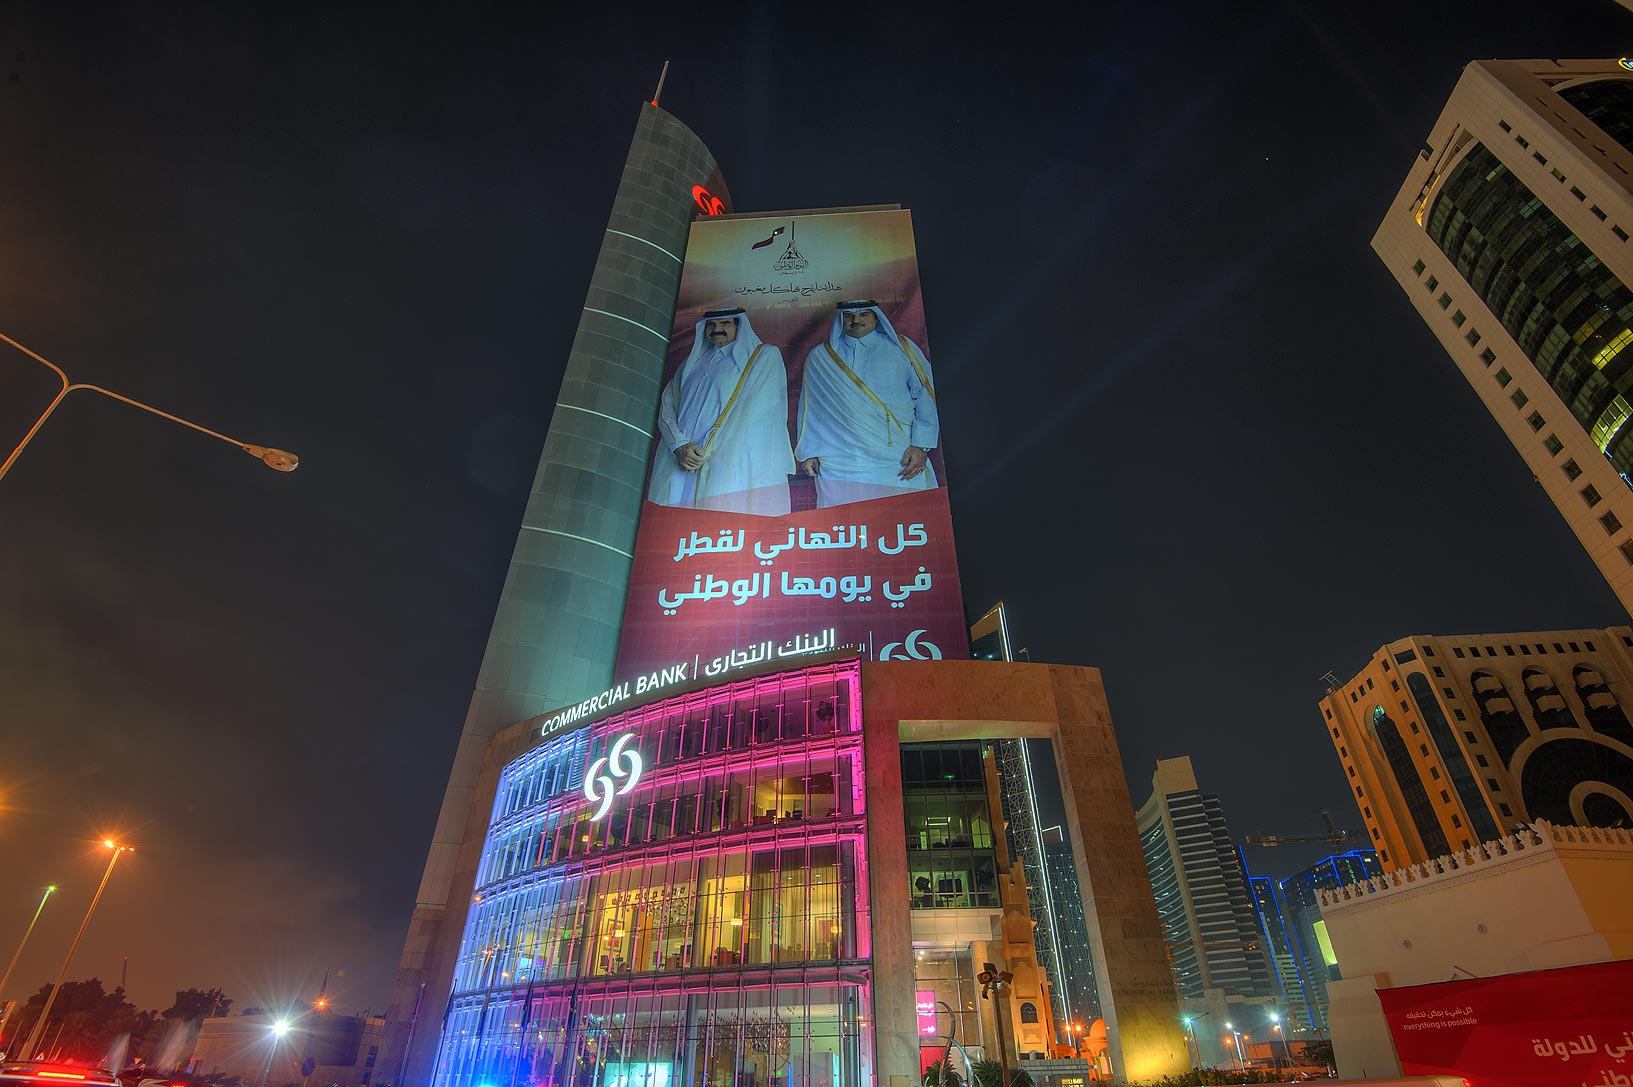 Commercial Bank in West Bay, with a giant portrait of a pair of emirs. Doha, Qatar